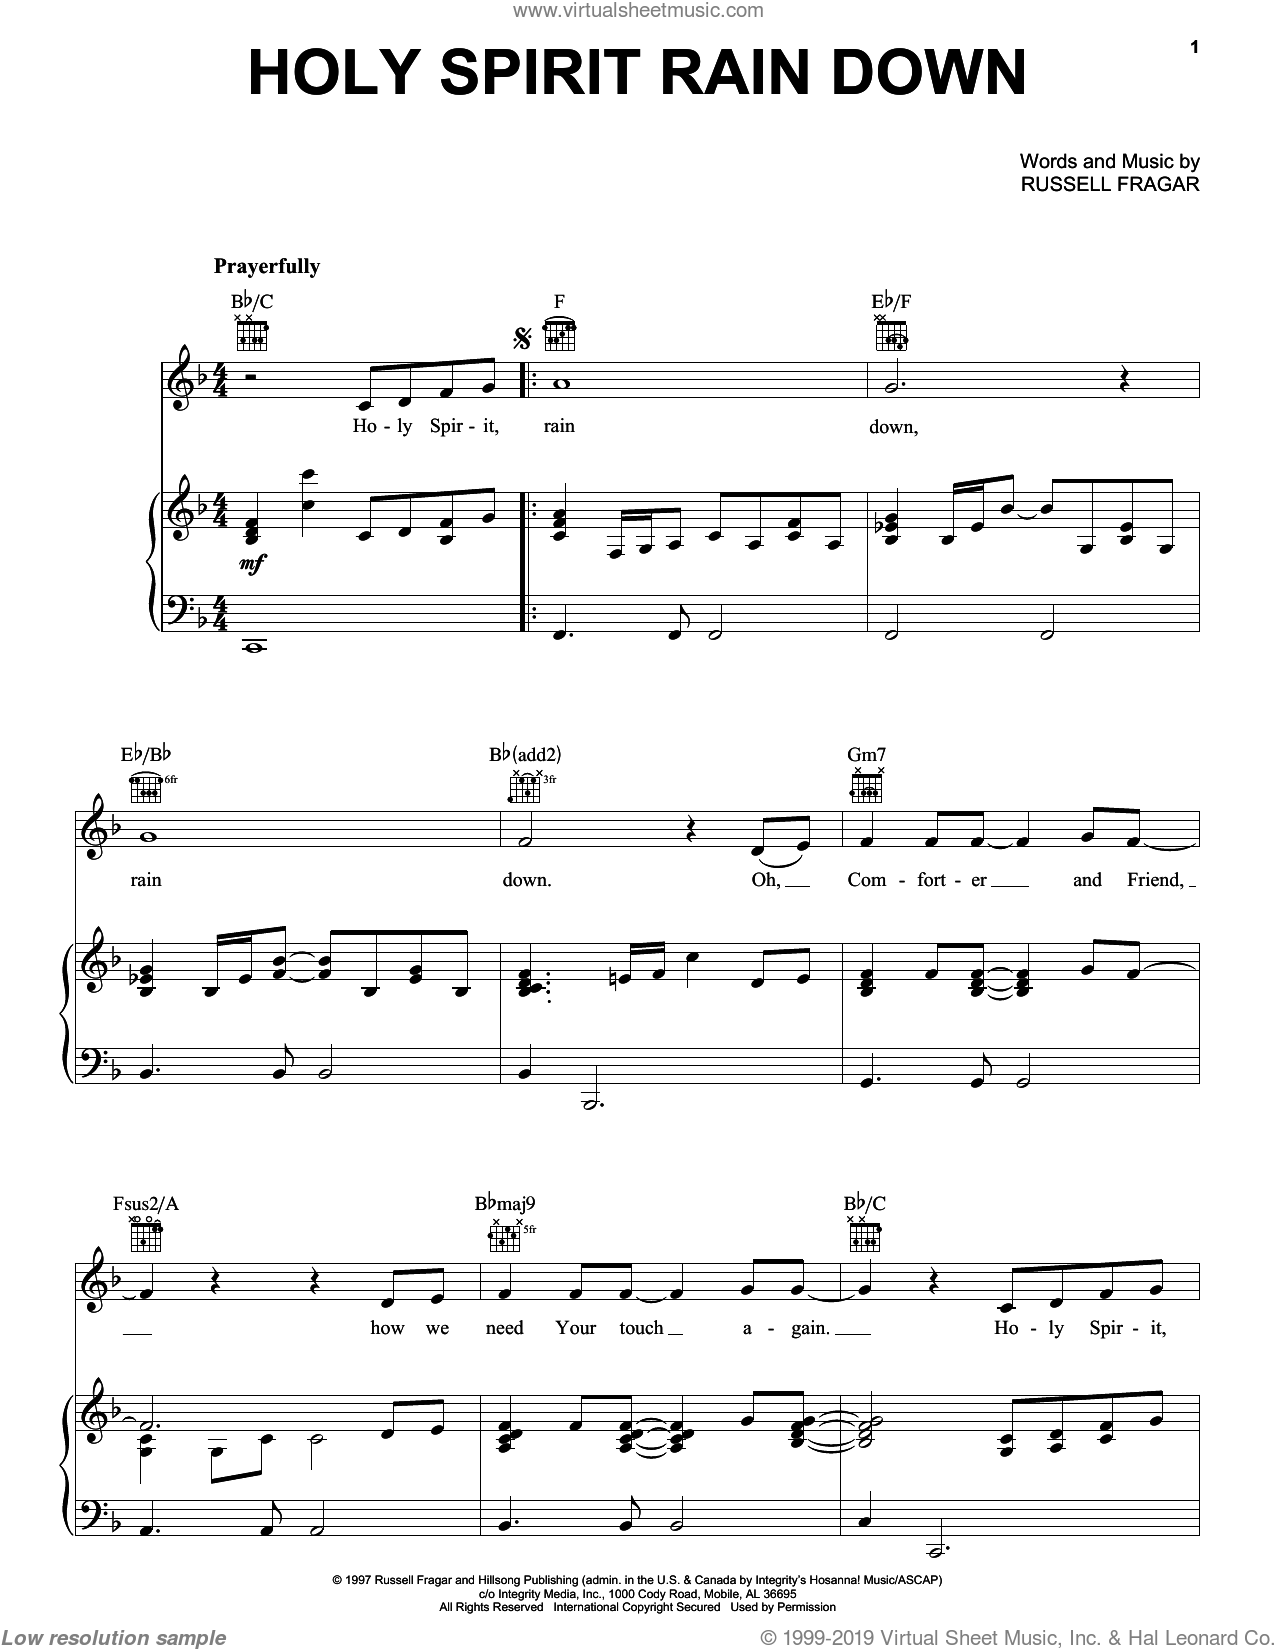 Holy Spirit Rain Down sheet music for voice, piano or guitar by Russell Fragar, intermediate skill level